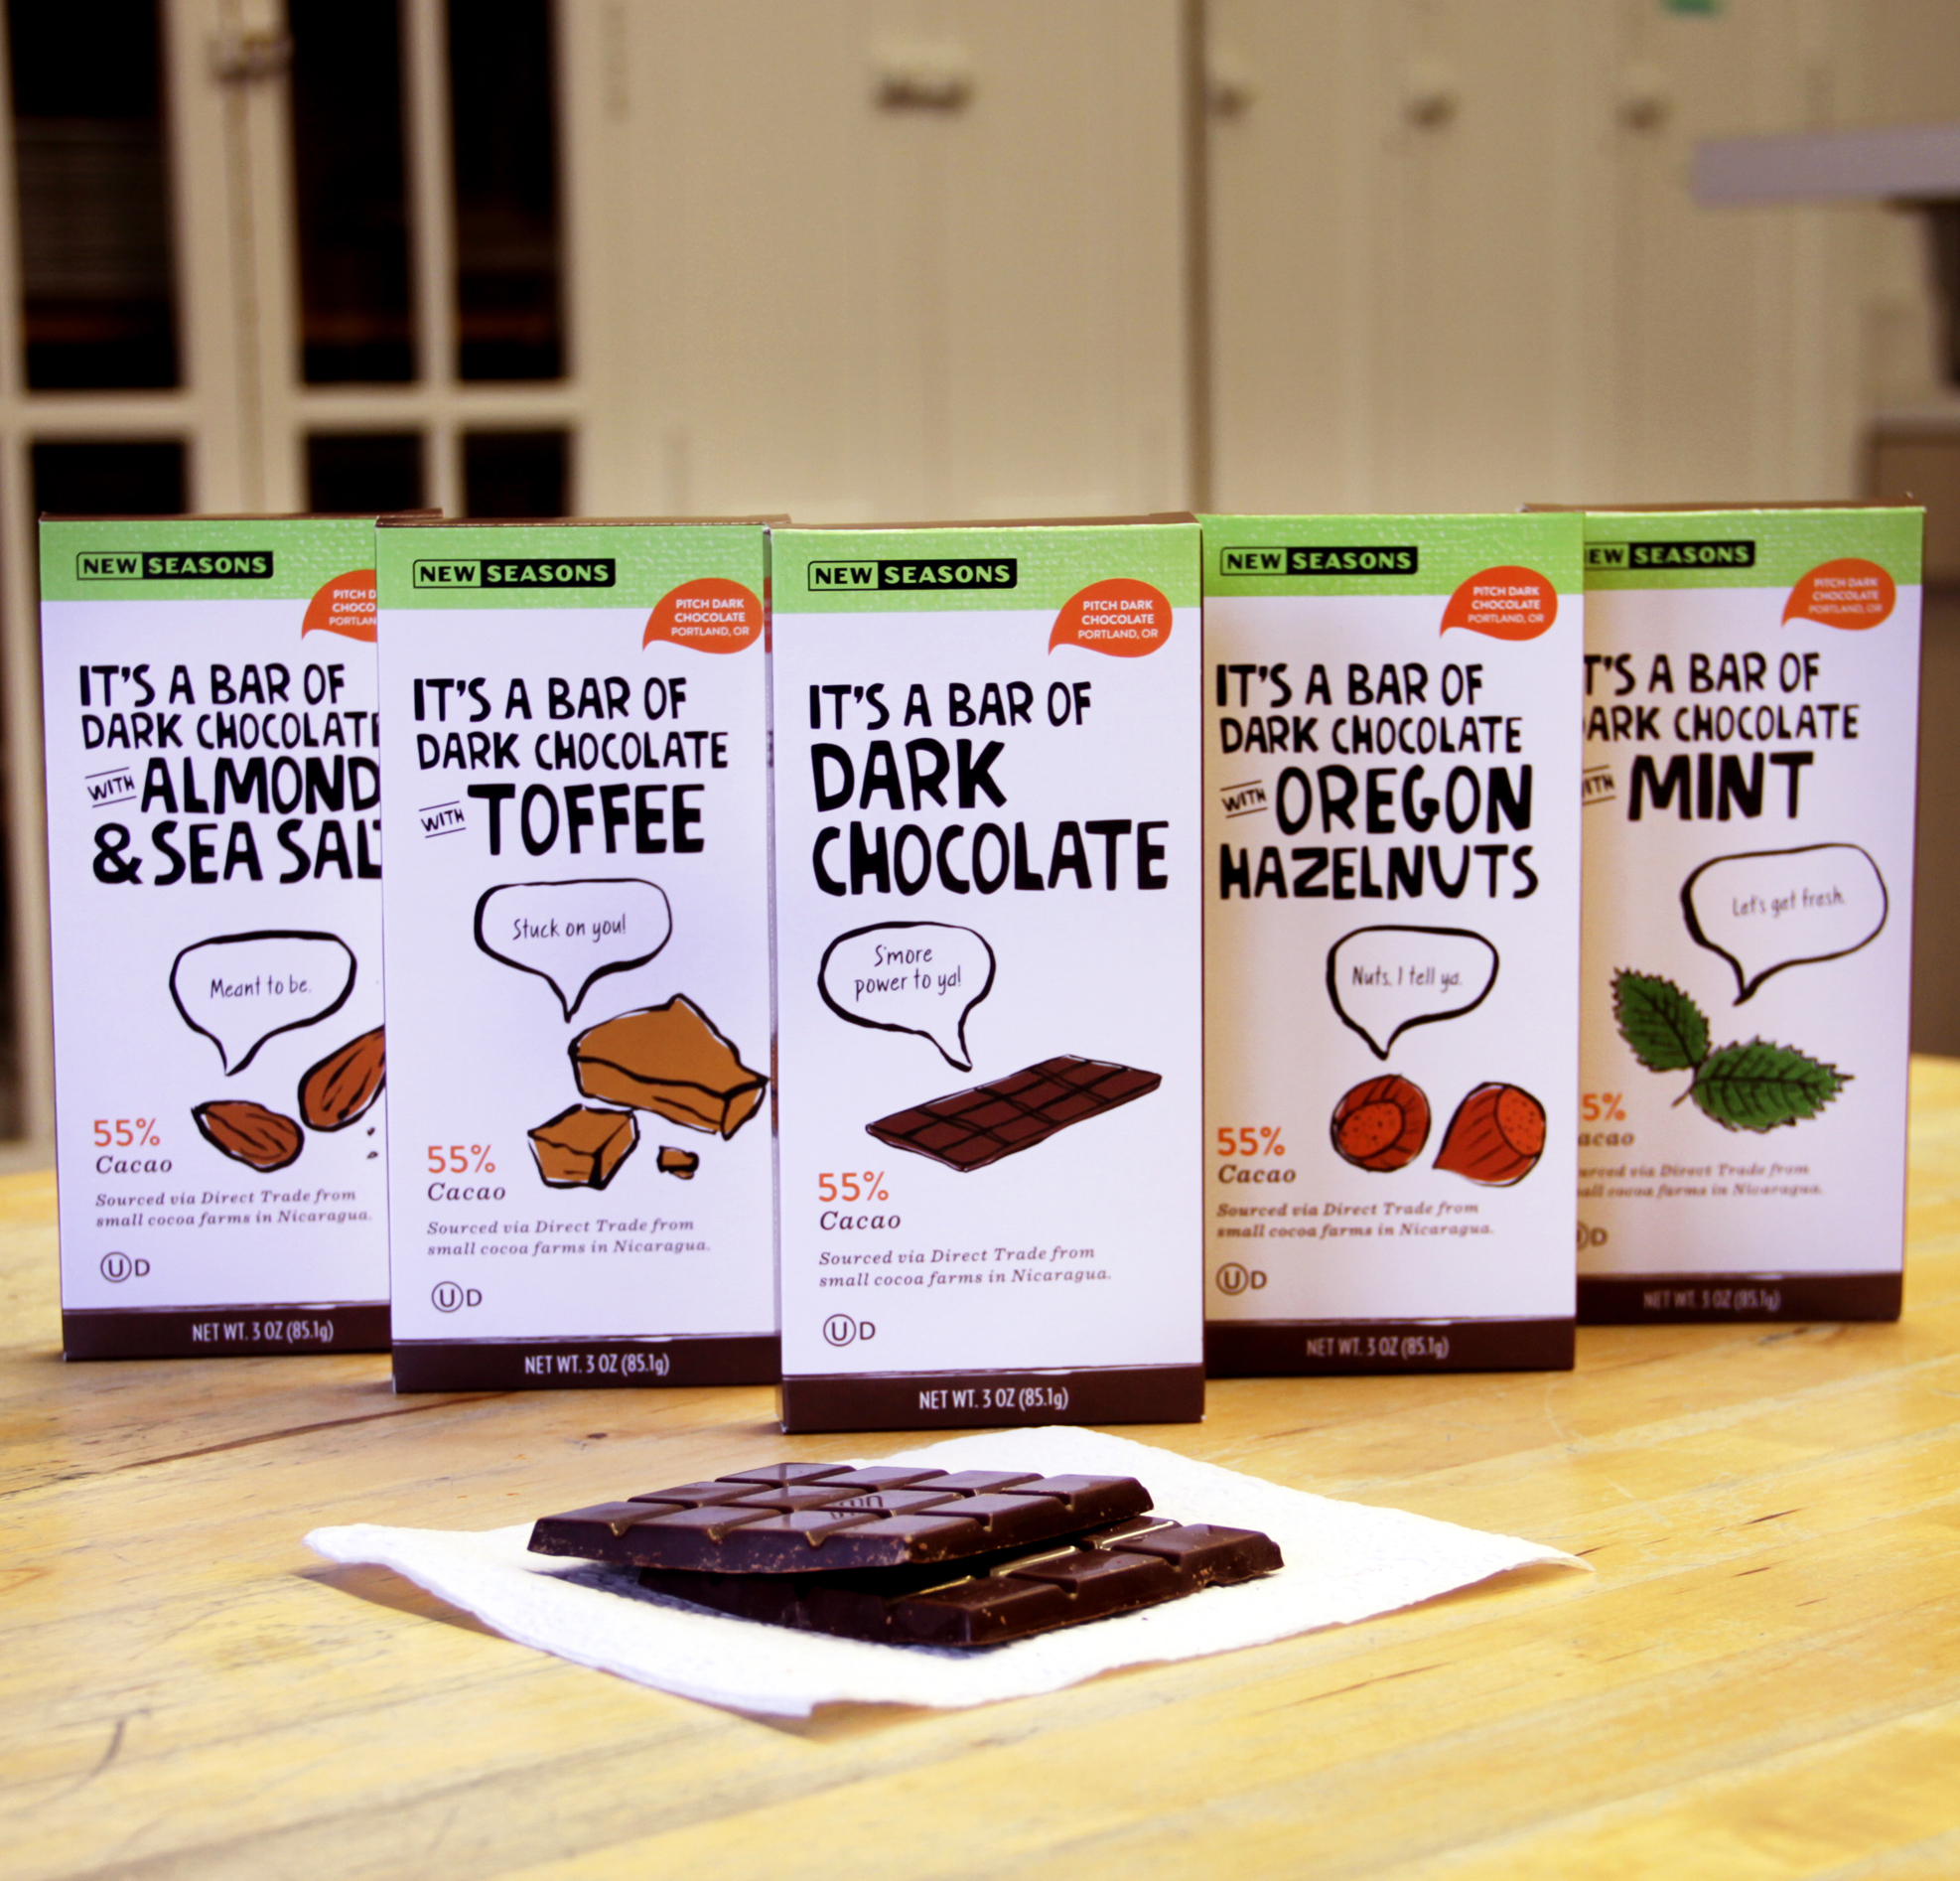 bars of new seasons brand chocolate in a plethora of flavors